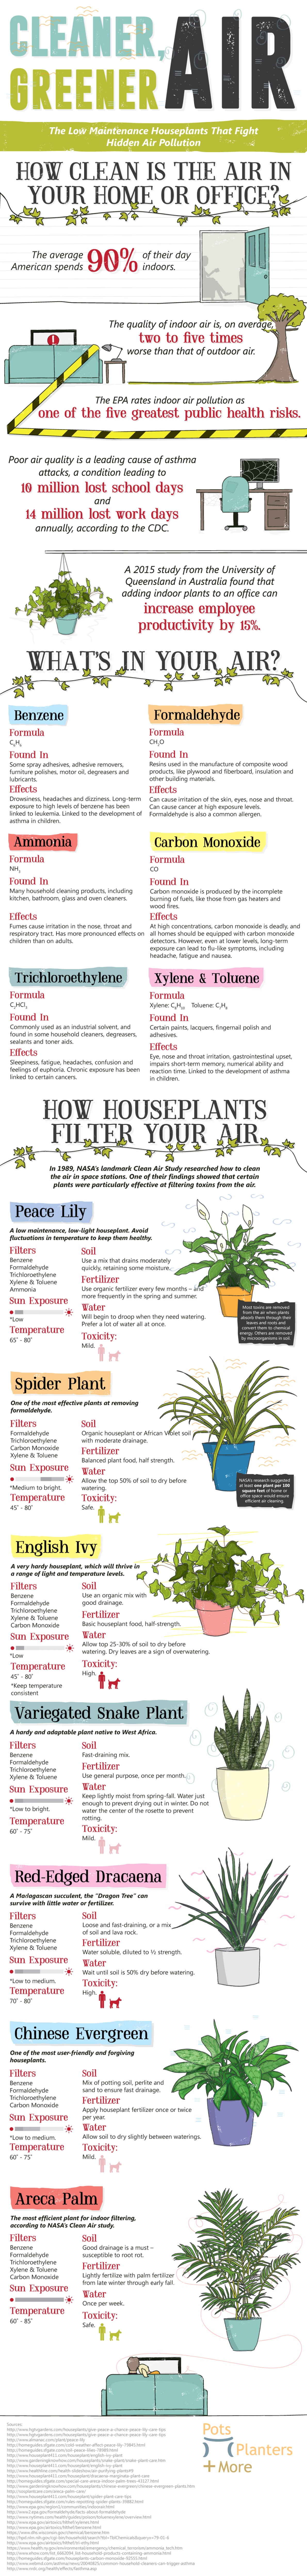 The low maintenance houseplants that fight hidden air pollution Infographic